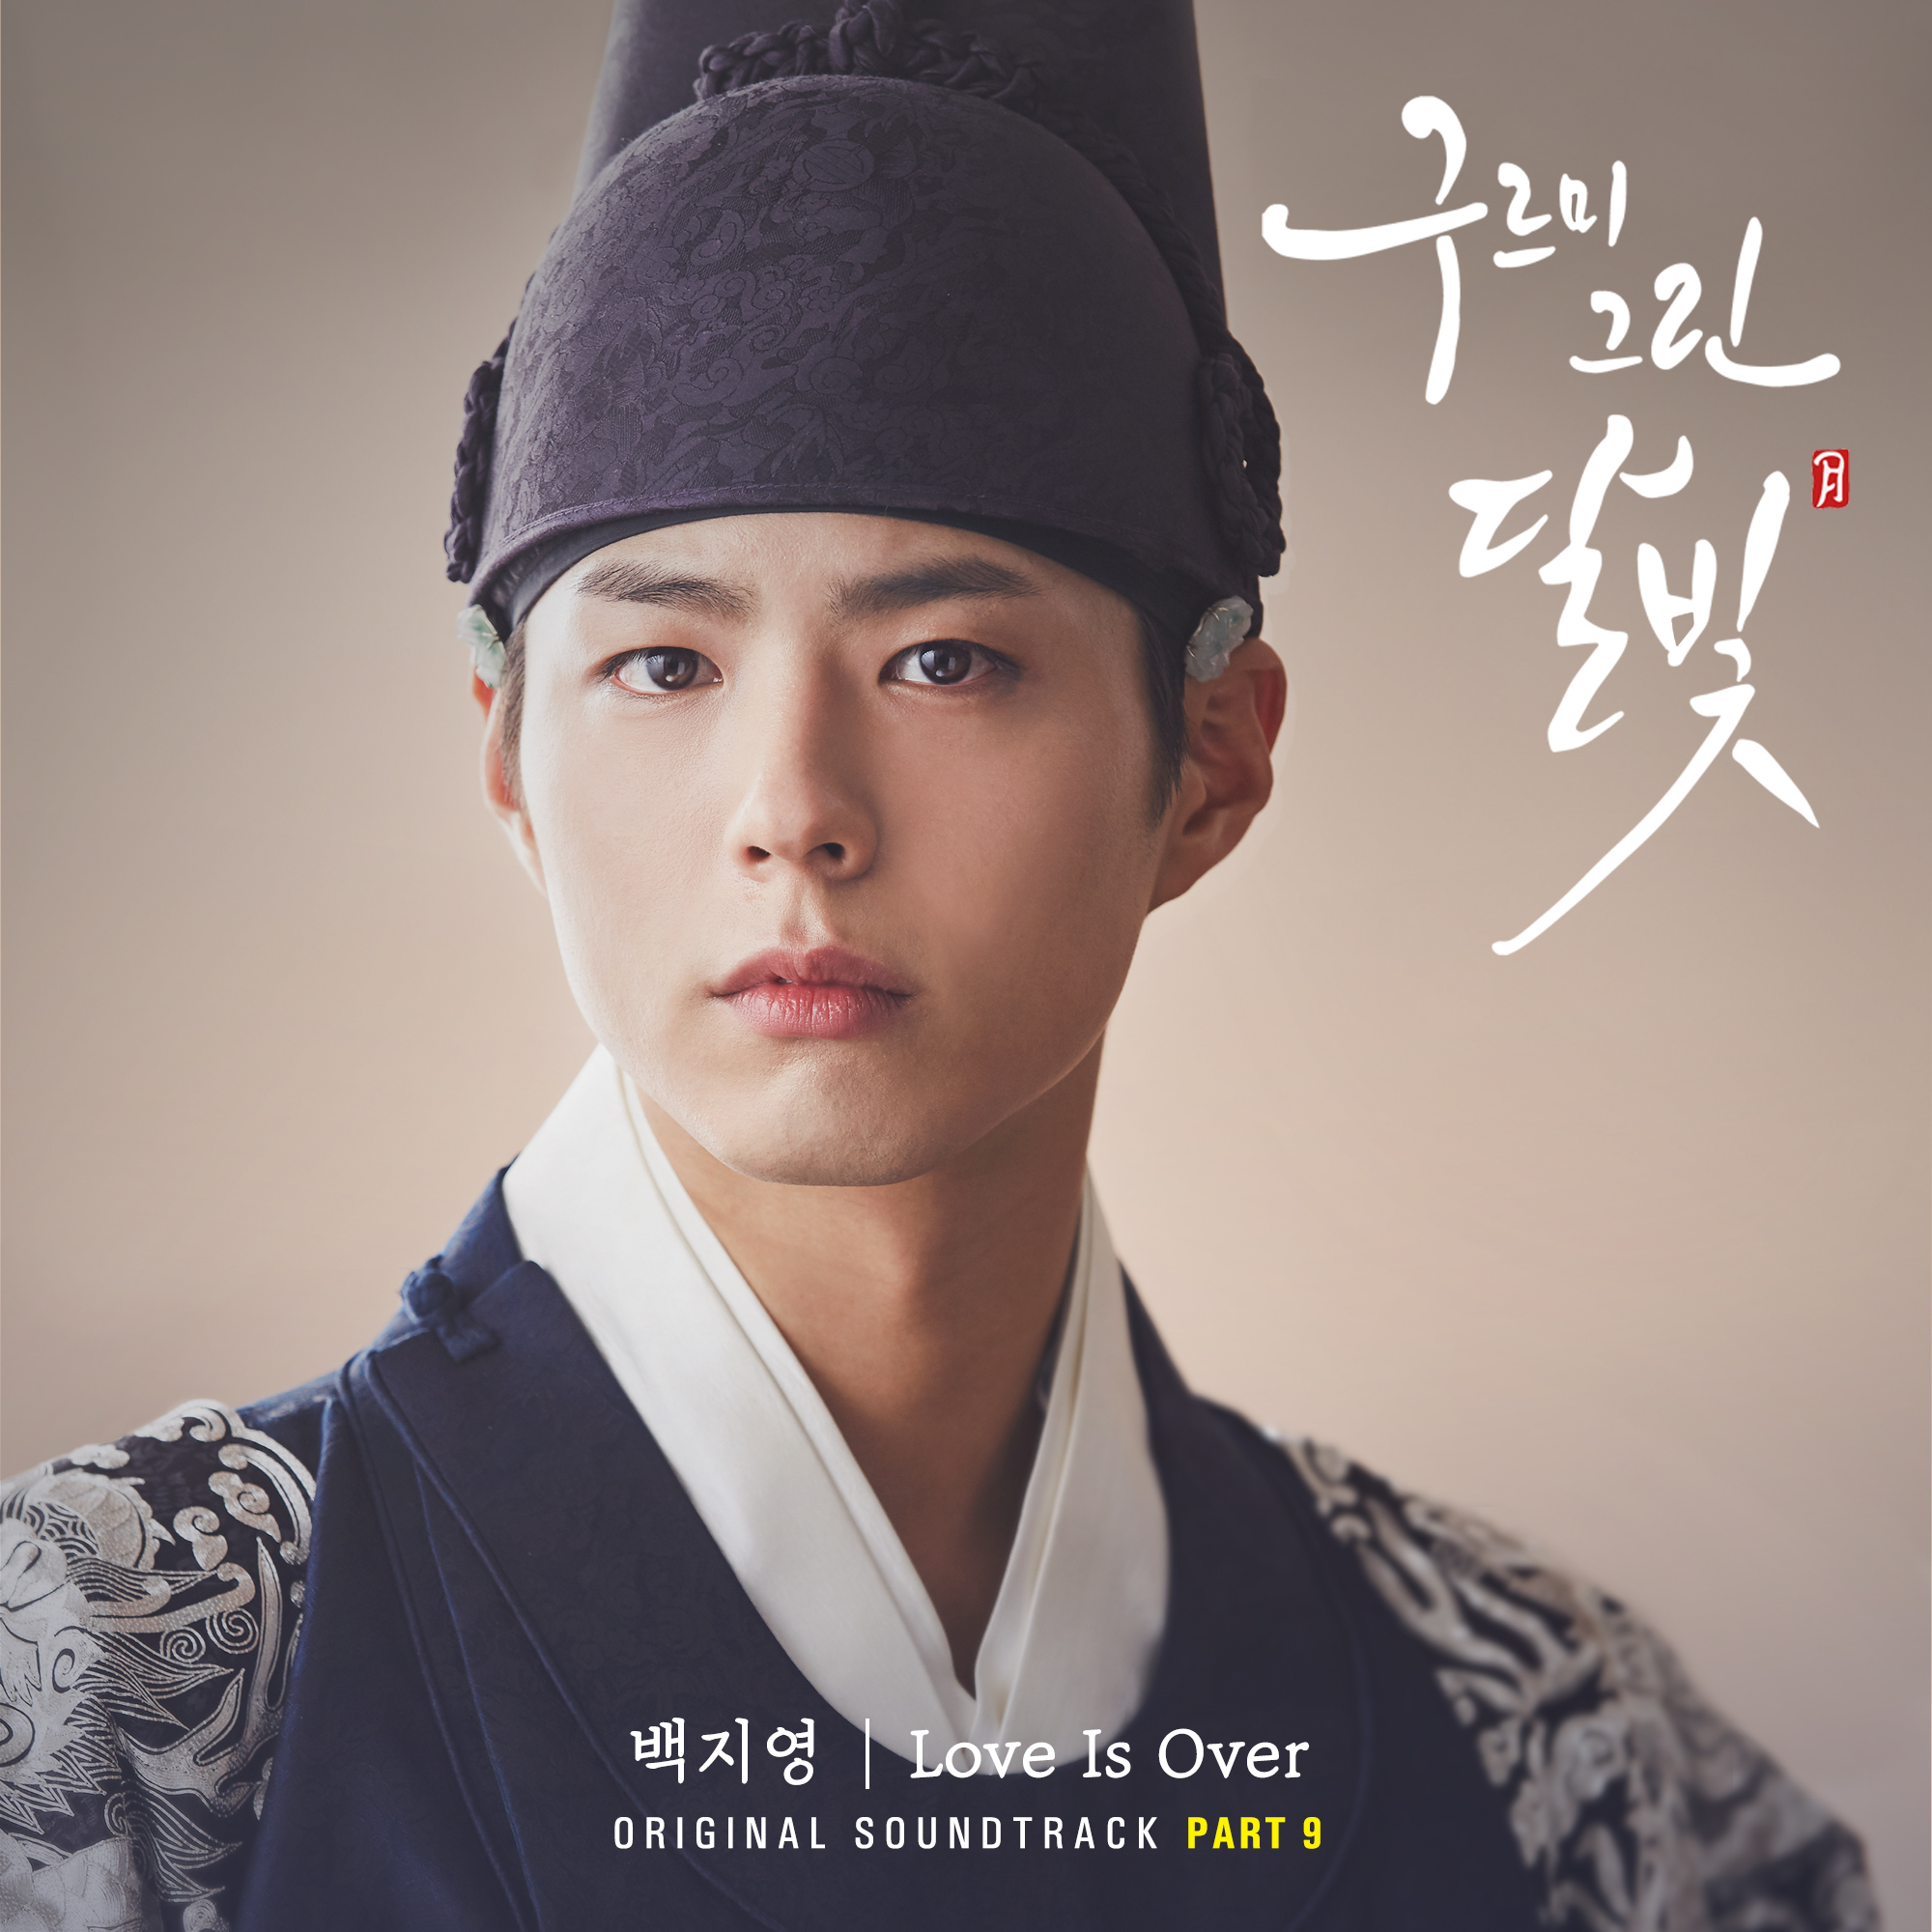 Baek Ji Young – Moonlight Drawn by Clouds OST Part 9 (FLAC)